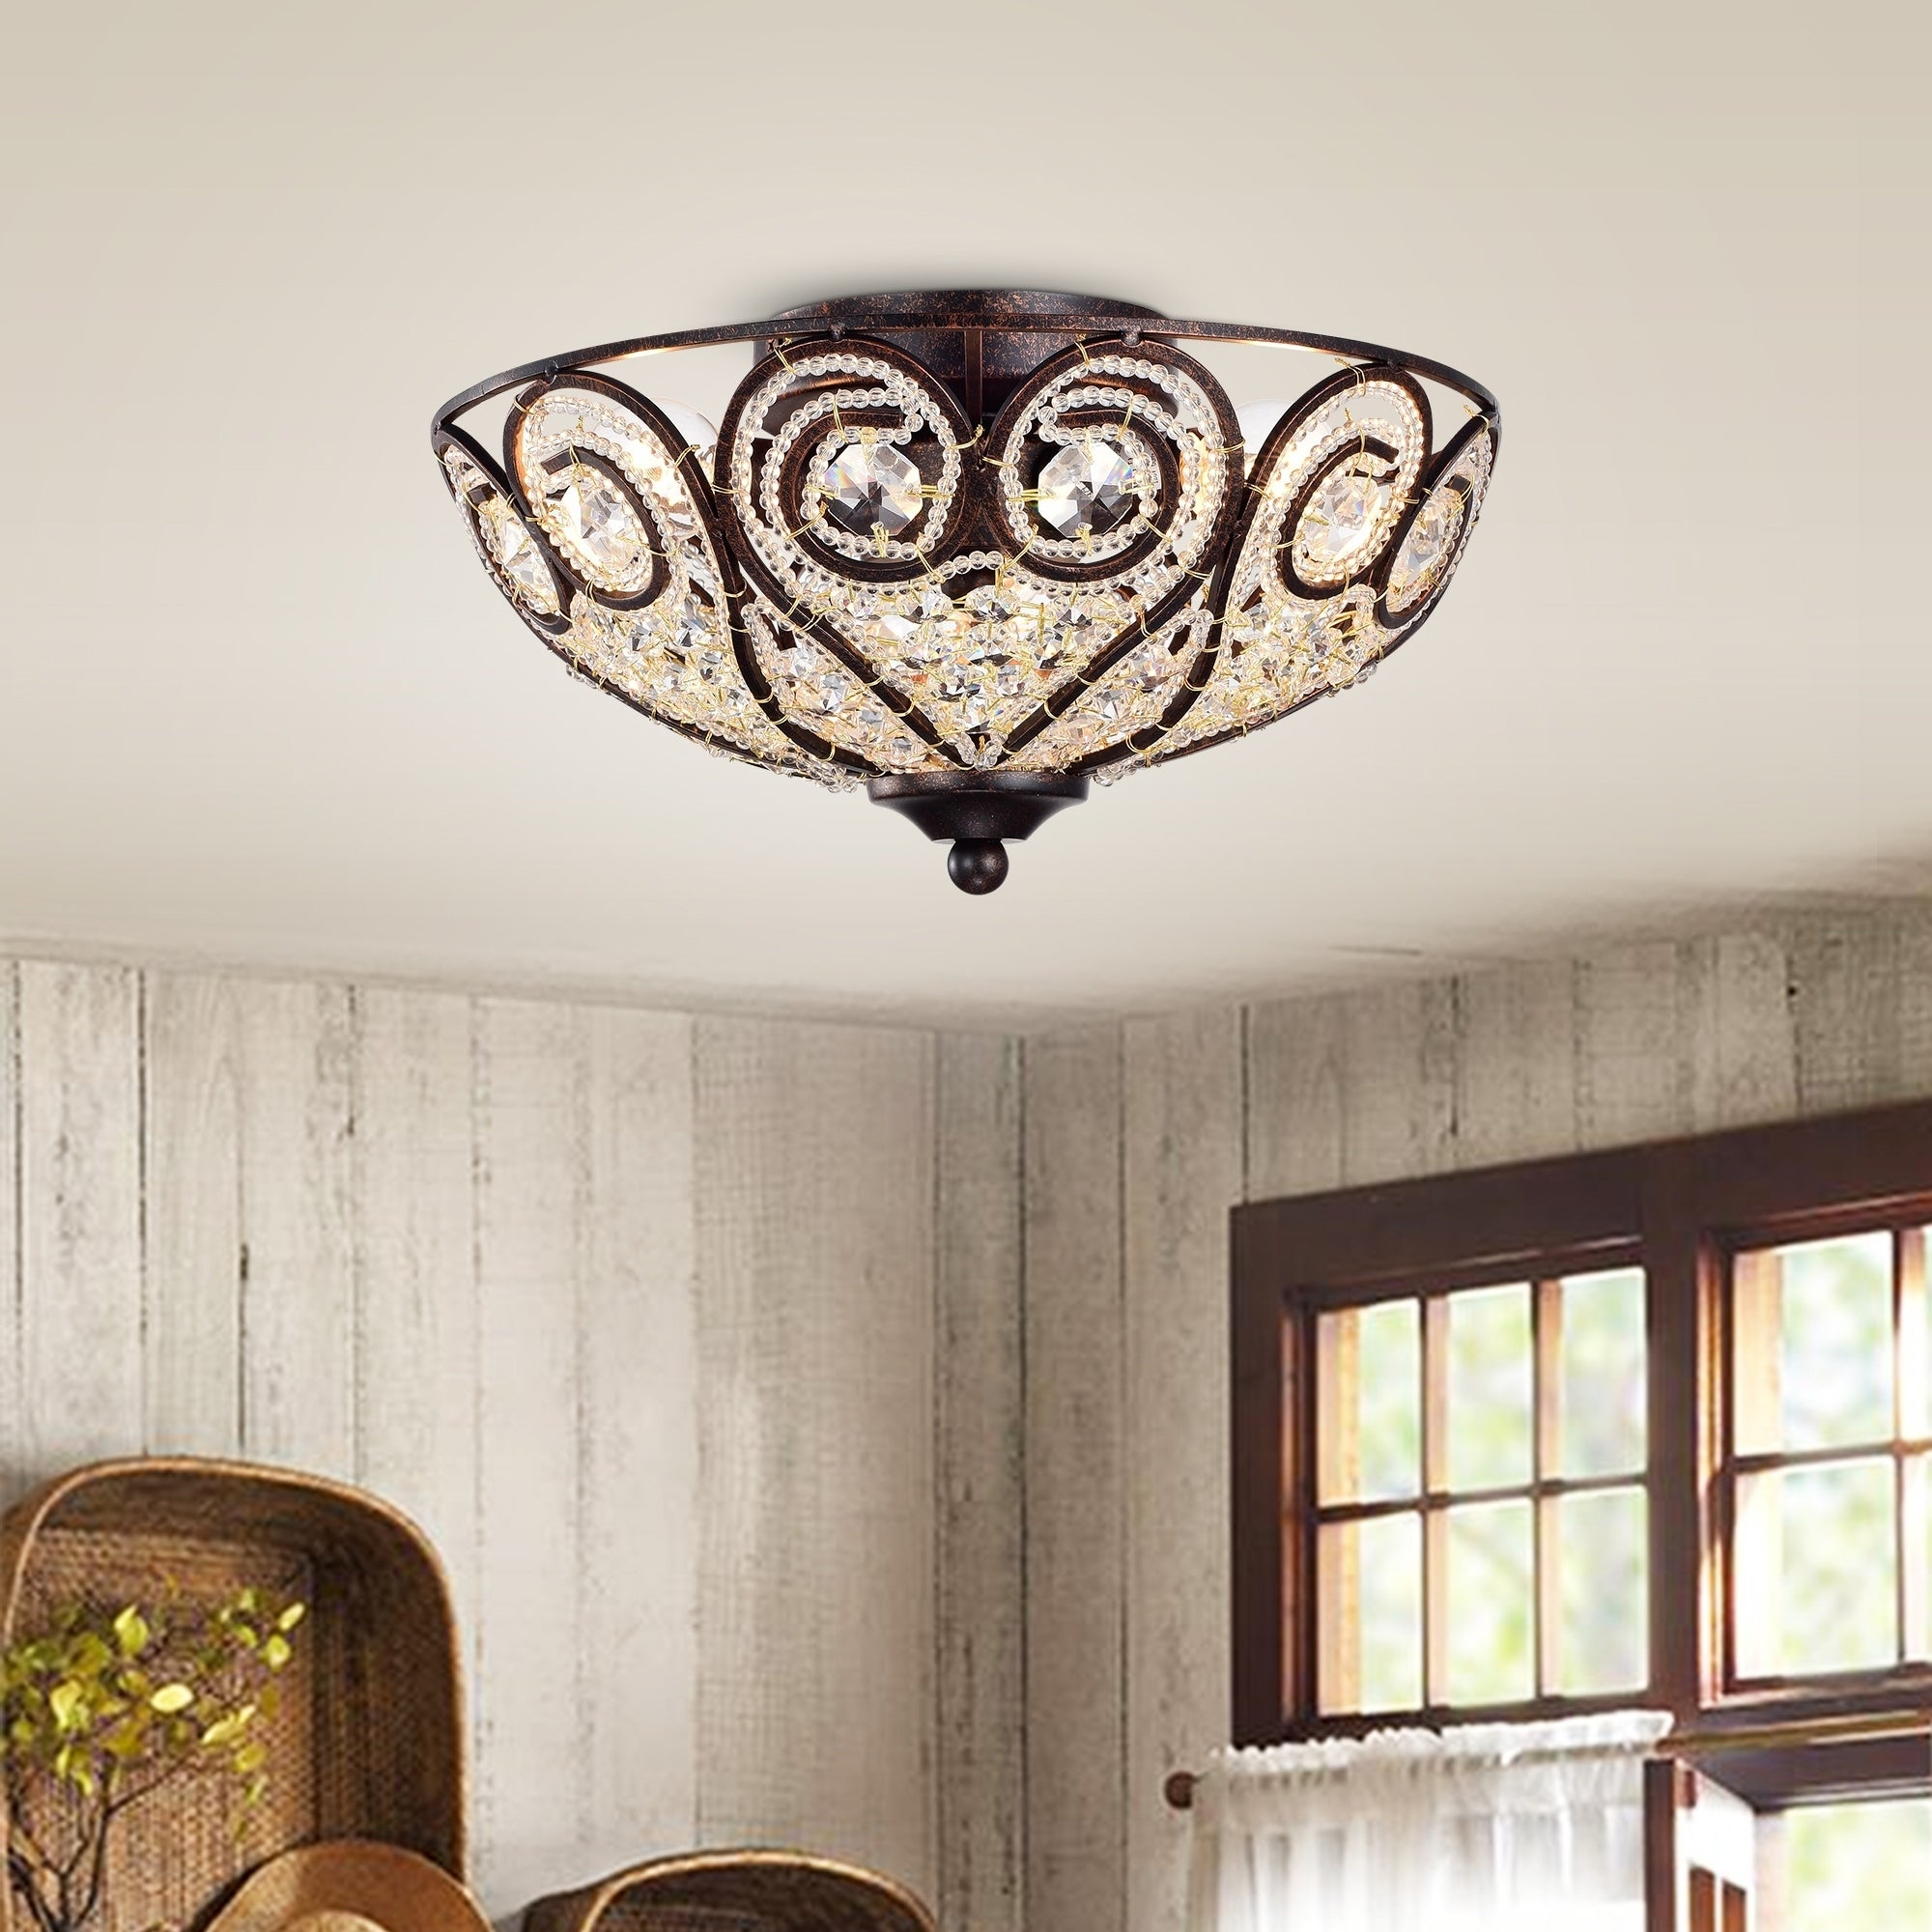 Shop Ceslee 3-light Rustic Bronze Flushmount Ceiling Lamp with Heart ...